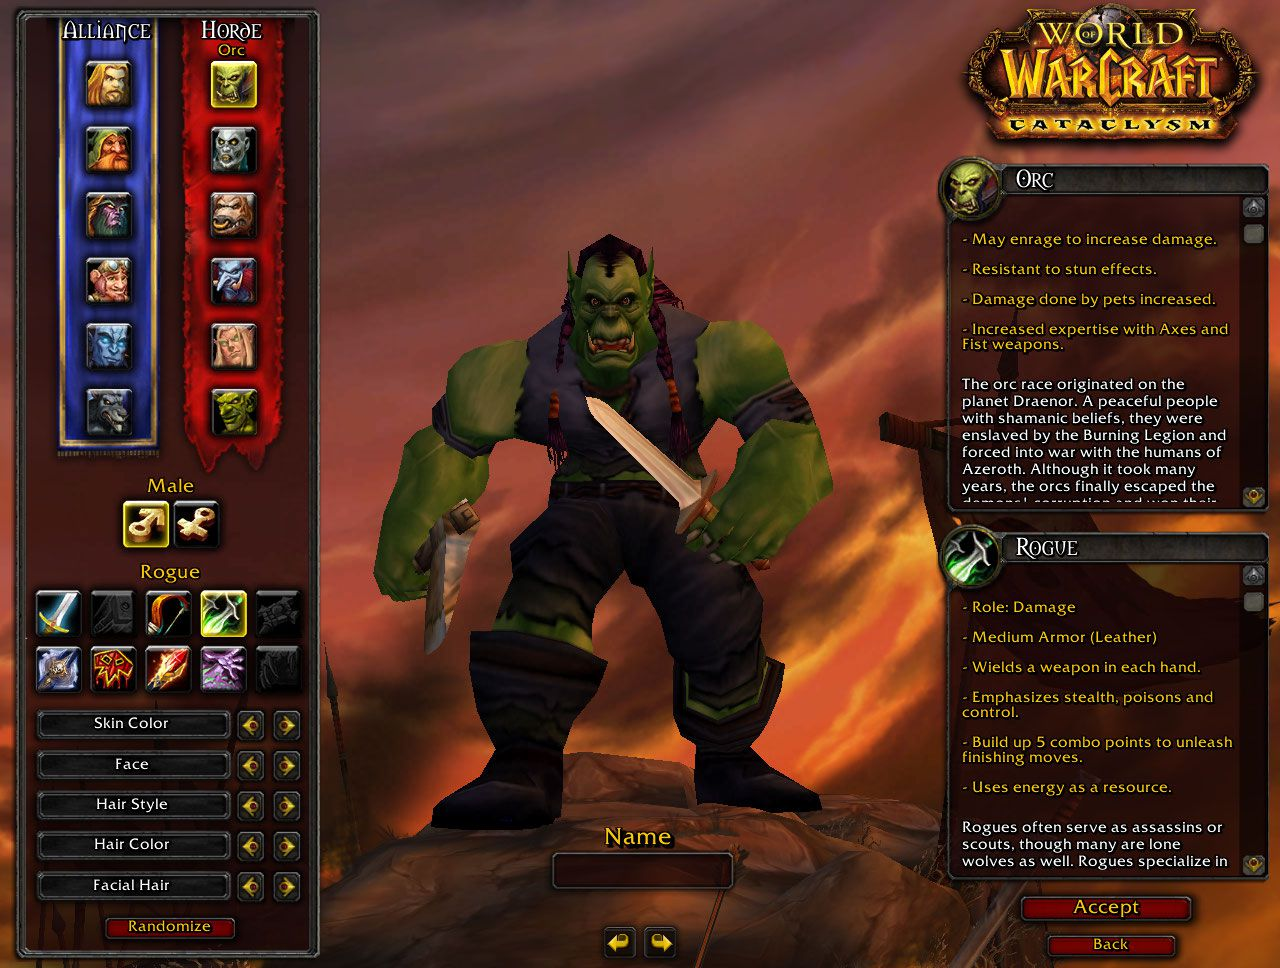 Orc Rogue Wow Screenshot Gamingcfg Com